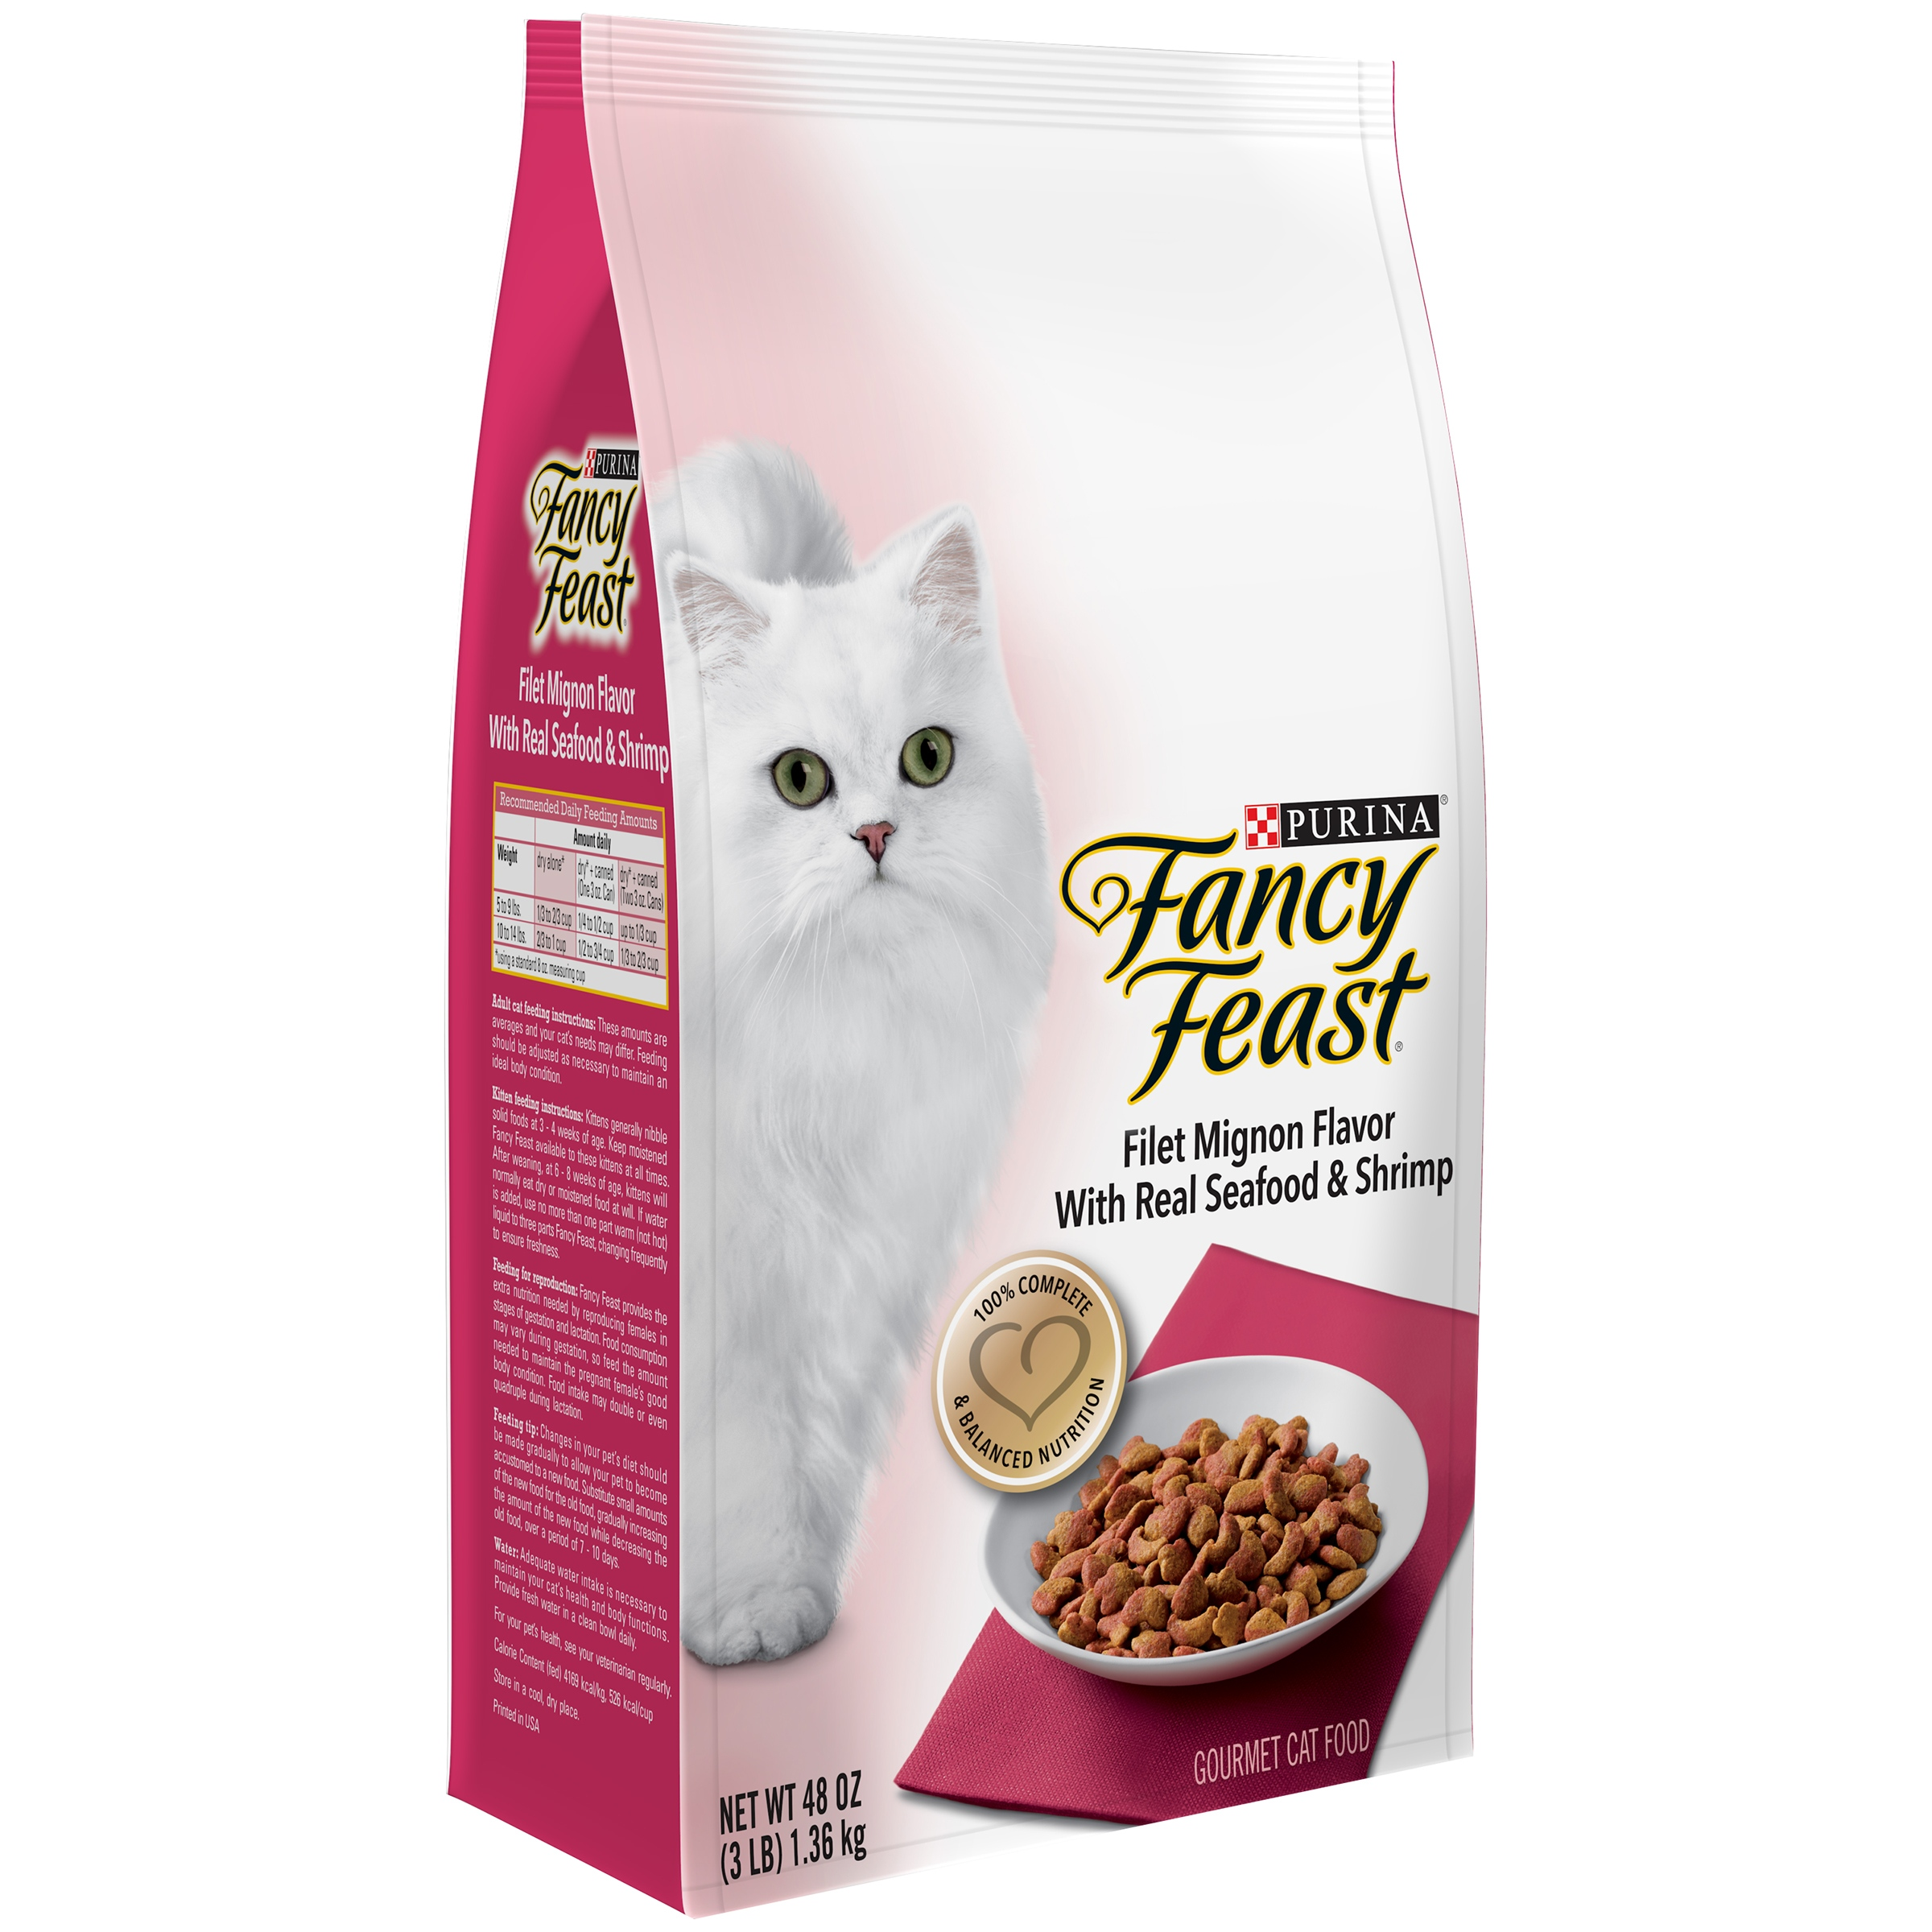 Purina Fancy Feast Gourmet Dry Cat Food Filet Mignon Flavor With Real Seafood & Shrimp 3 lb. Bag